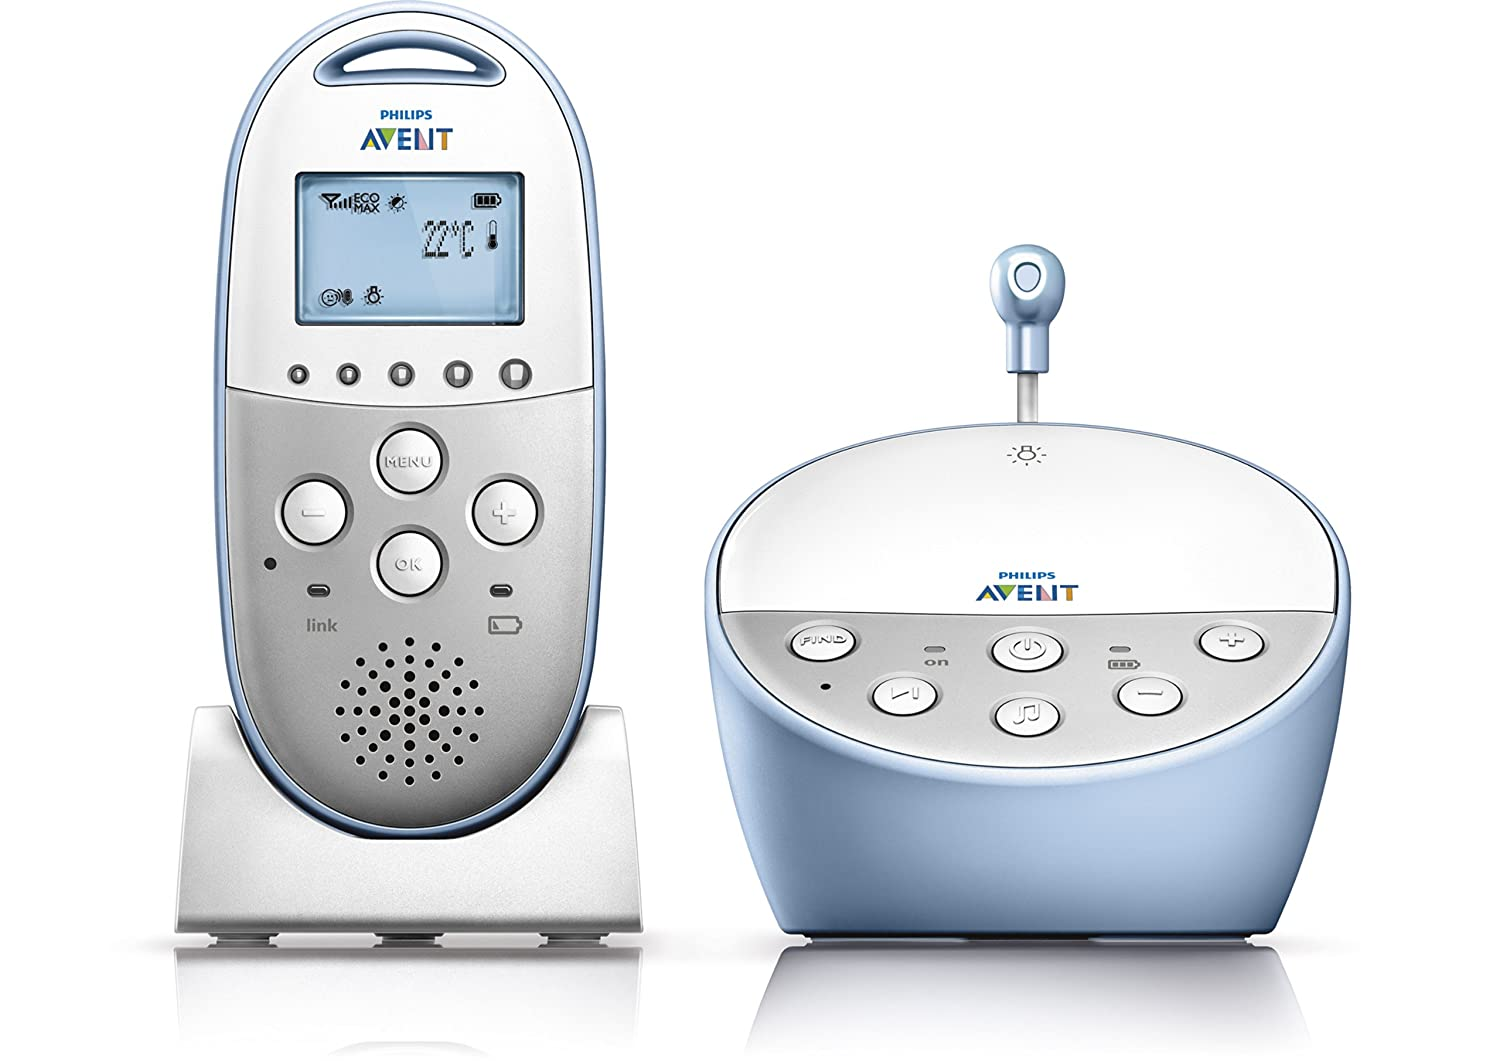 Philips Avent DECT Baby Monitor with Temperature Sensor and Night Mode, SCD570/10